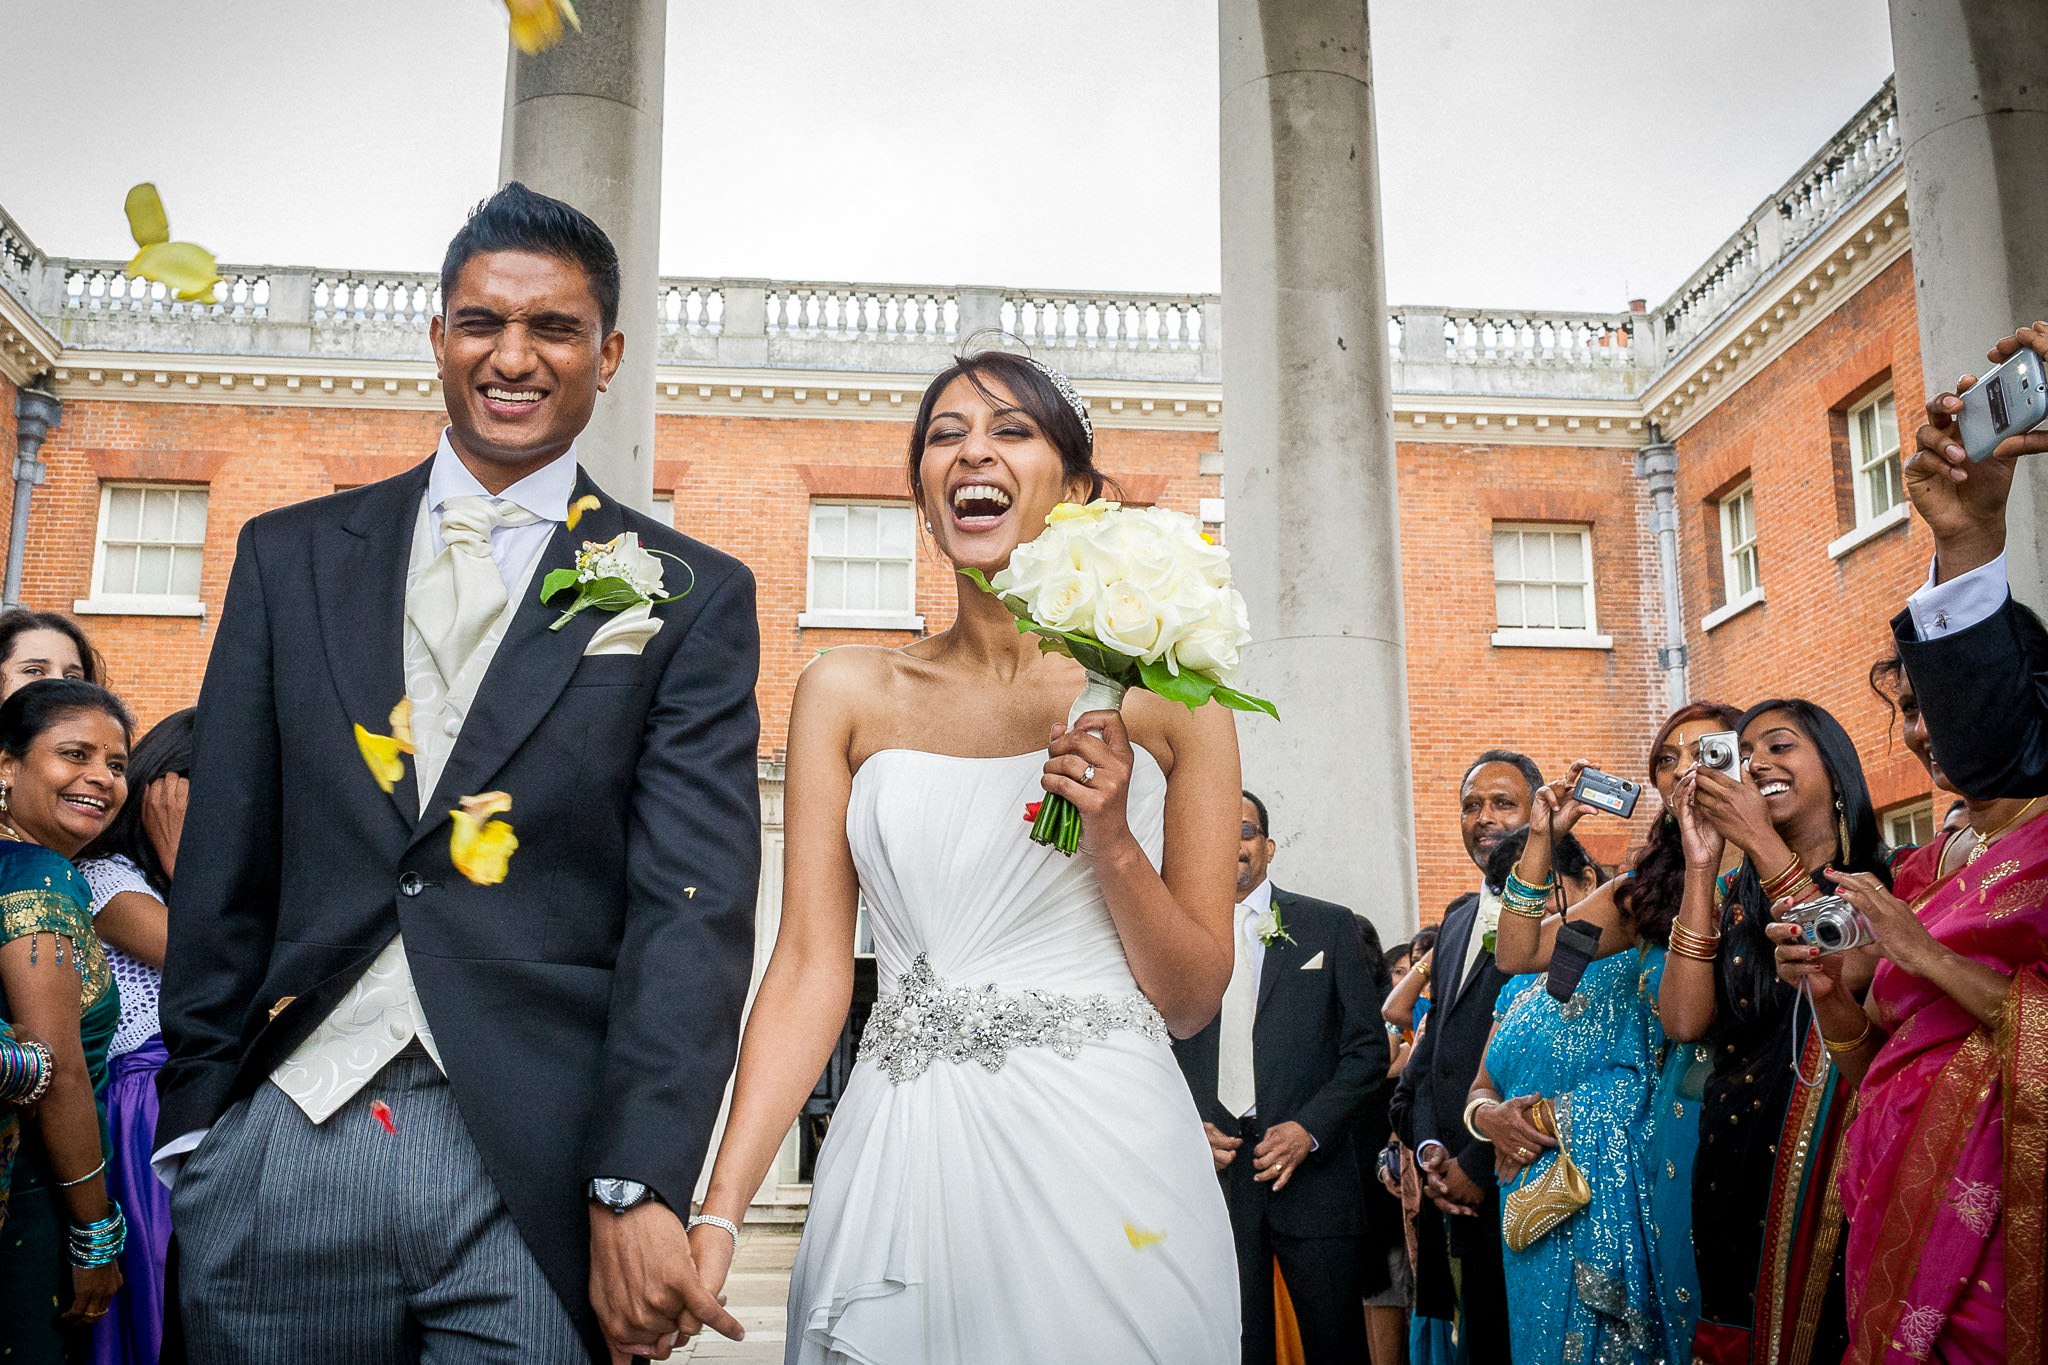 Osterley Park House Wedding Photographer confetti shot